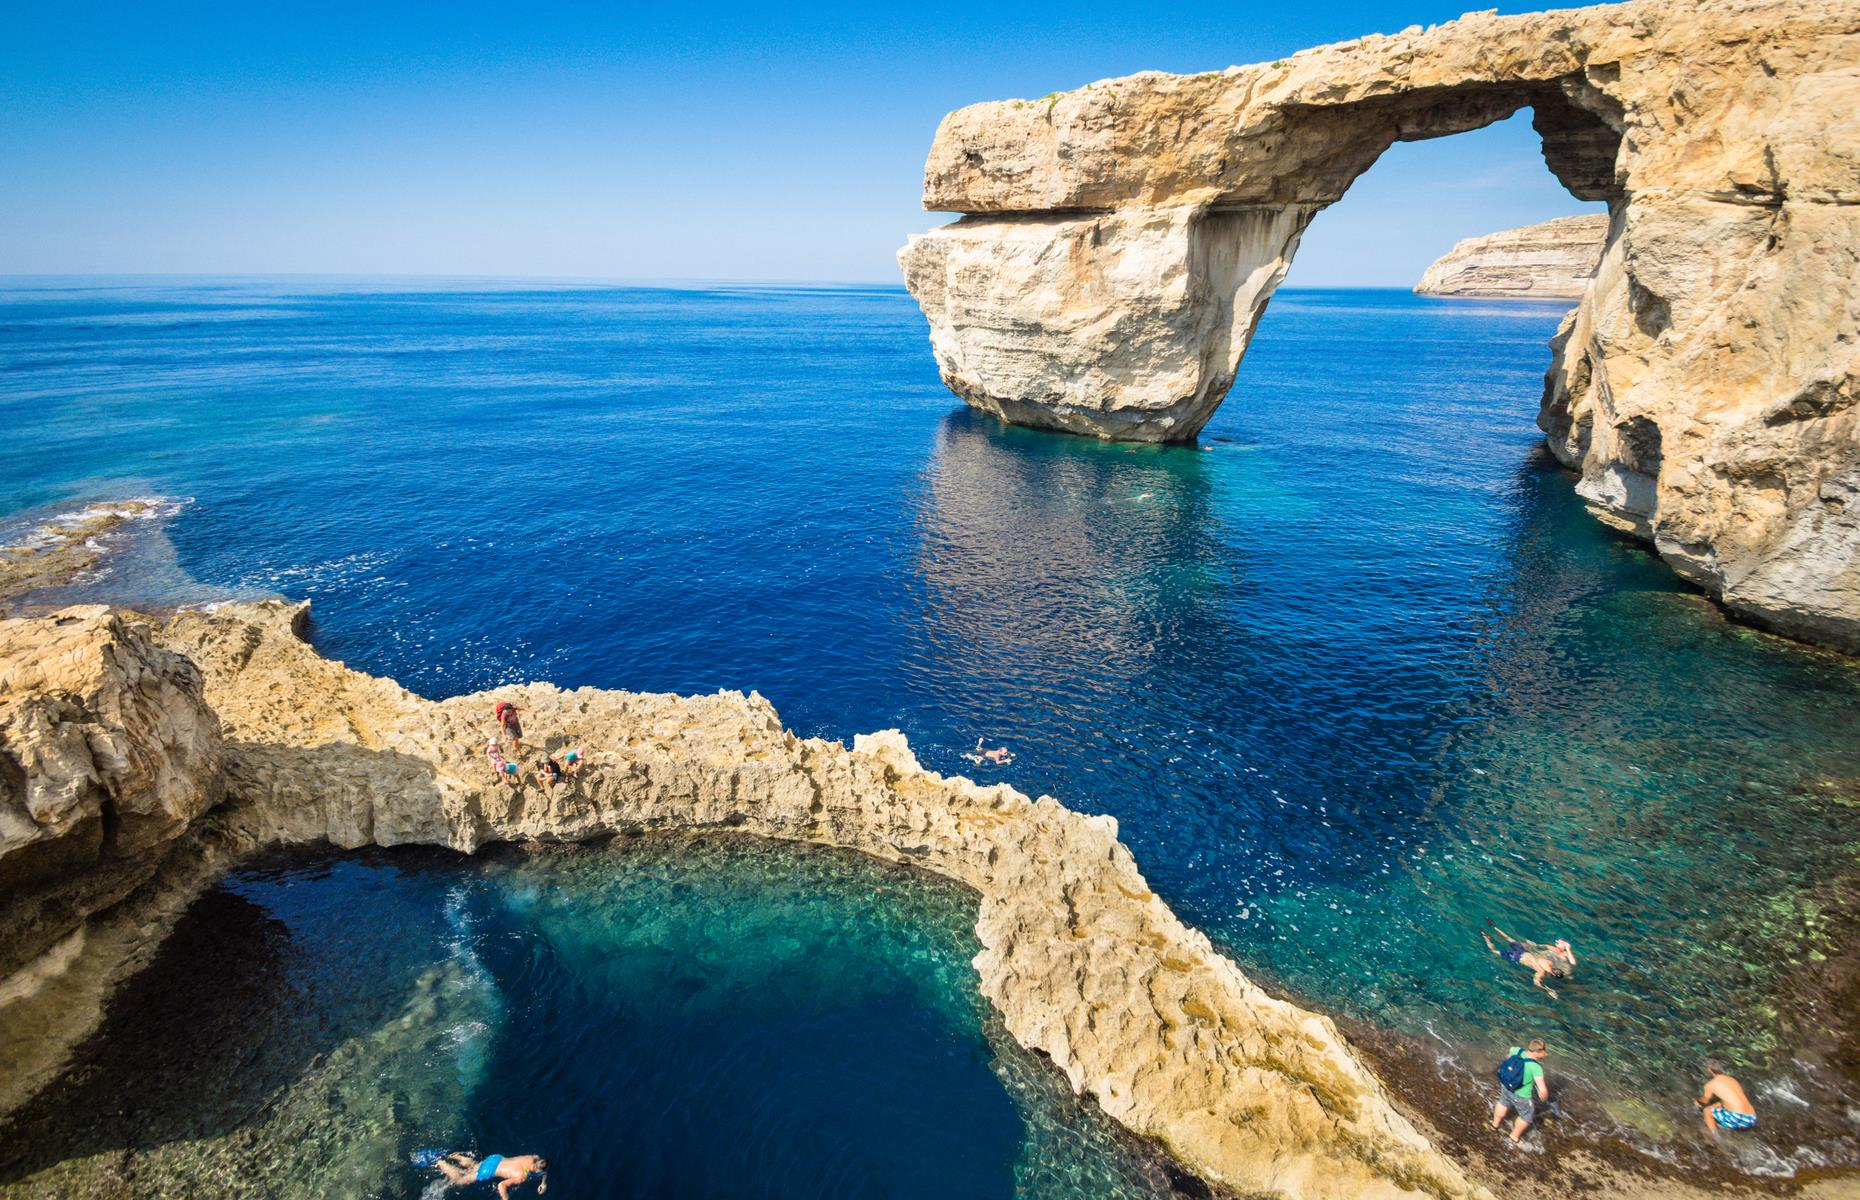 Slide 2 of 31: A limestone arch known as the Azure Window was one of Malta's top tourist spots and featured in numerous films and TV series such as Game of Thrones. The spectacular sea arch, near Dwejra Bay on the gorgeous island of Gozo, was shaped by centuries of natural coastal erosion.